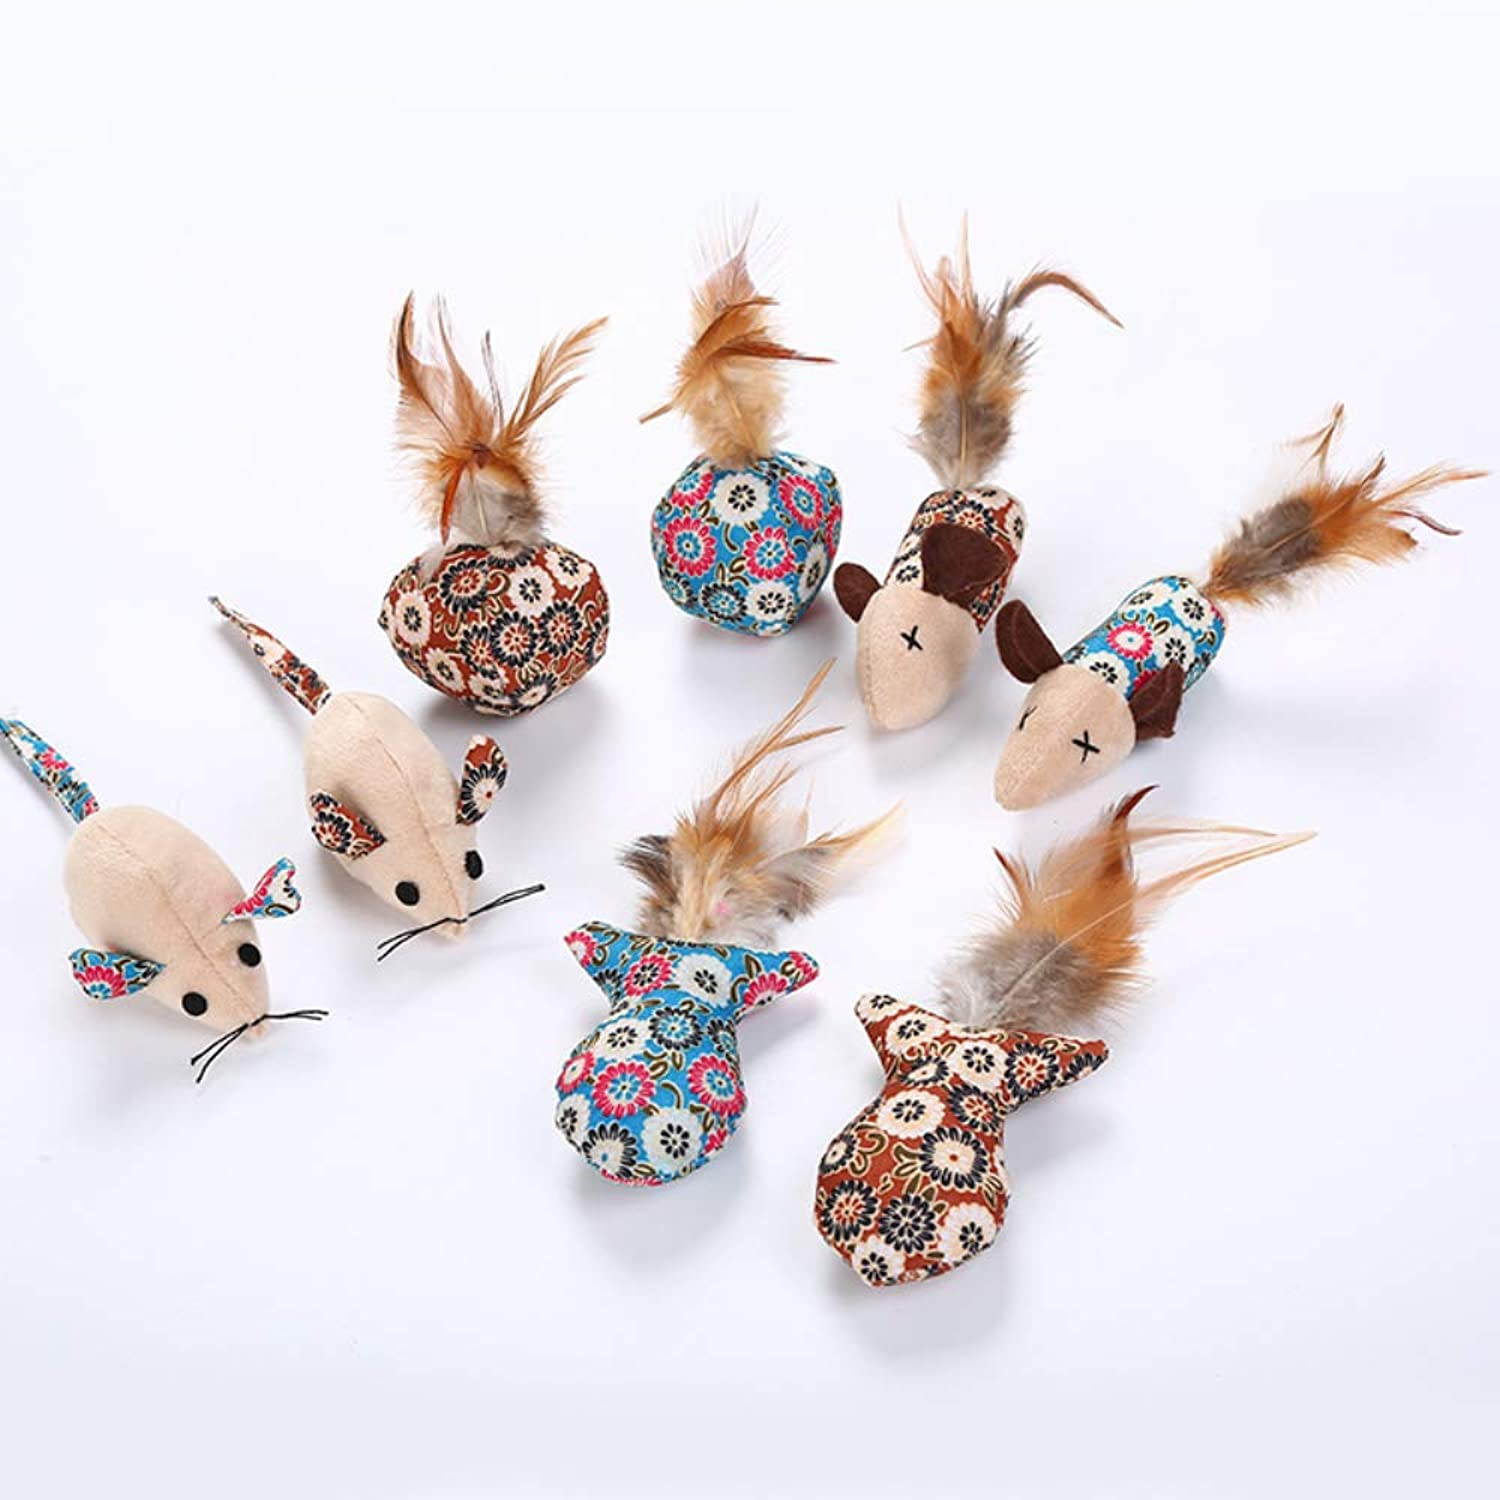 Cat Toys mice Pack 20Pack,Wand Interactive Feather Toy,Fluffy Mouse,Value Pack Cat Toys,Interactive Feather Teaser